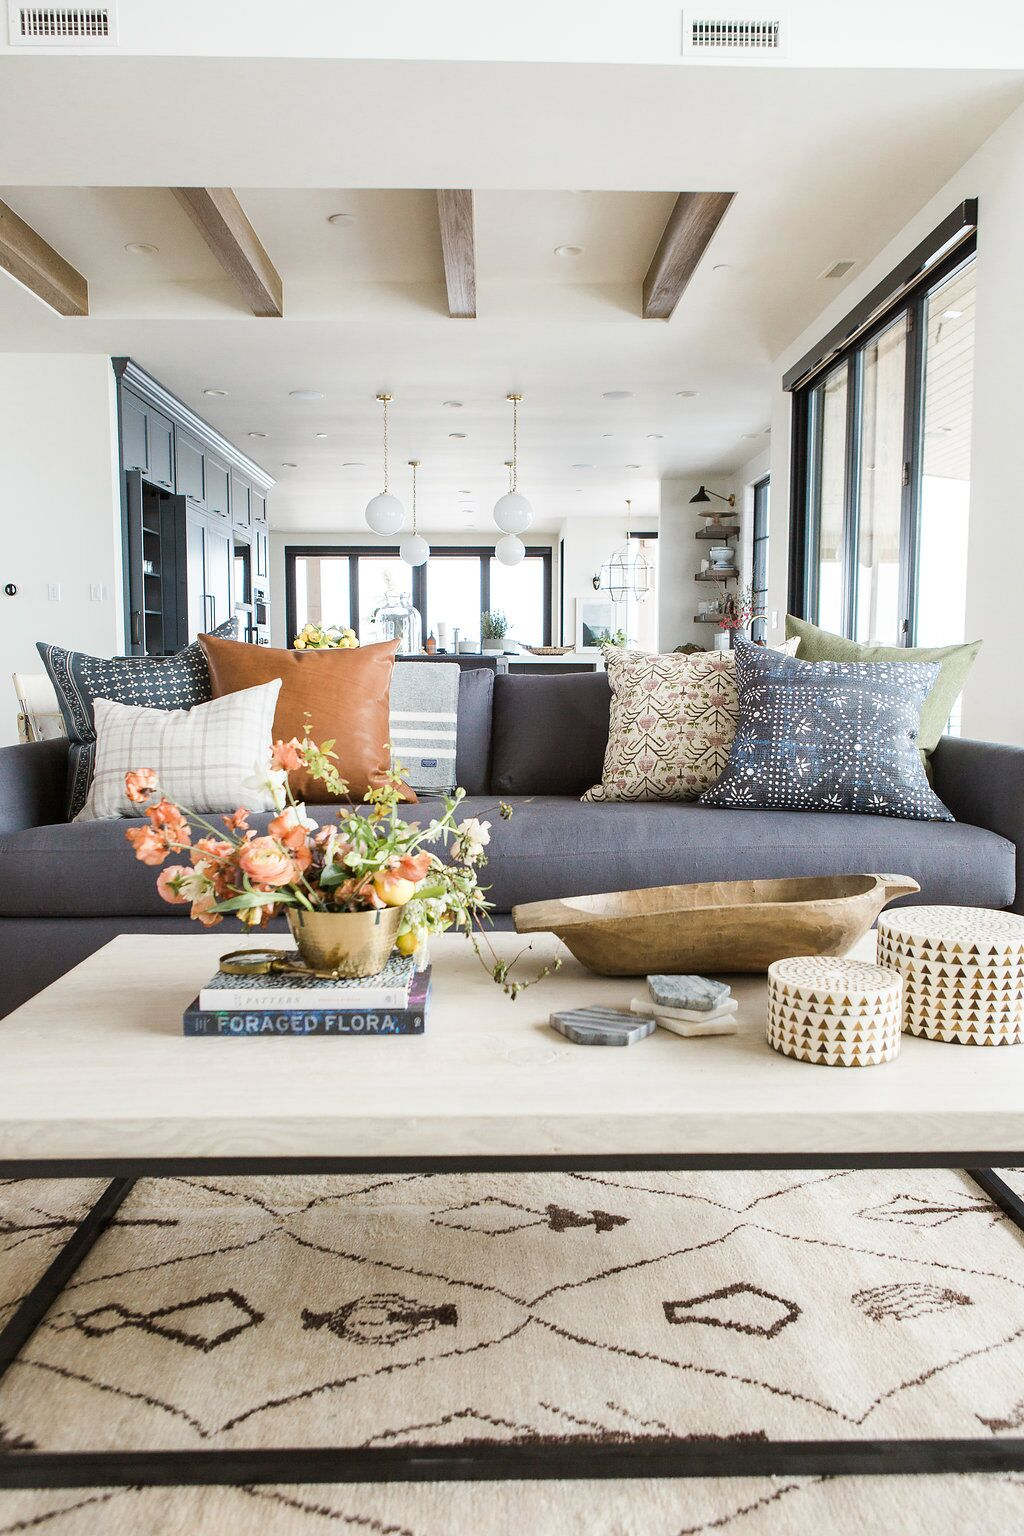 living room decorative pillows chicago bungalow ideas how to style your throw in a traditional setting you ll match on both sides of the sofa but i like mash up all different prints and even some larger